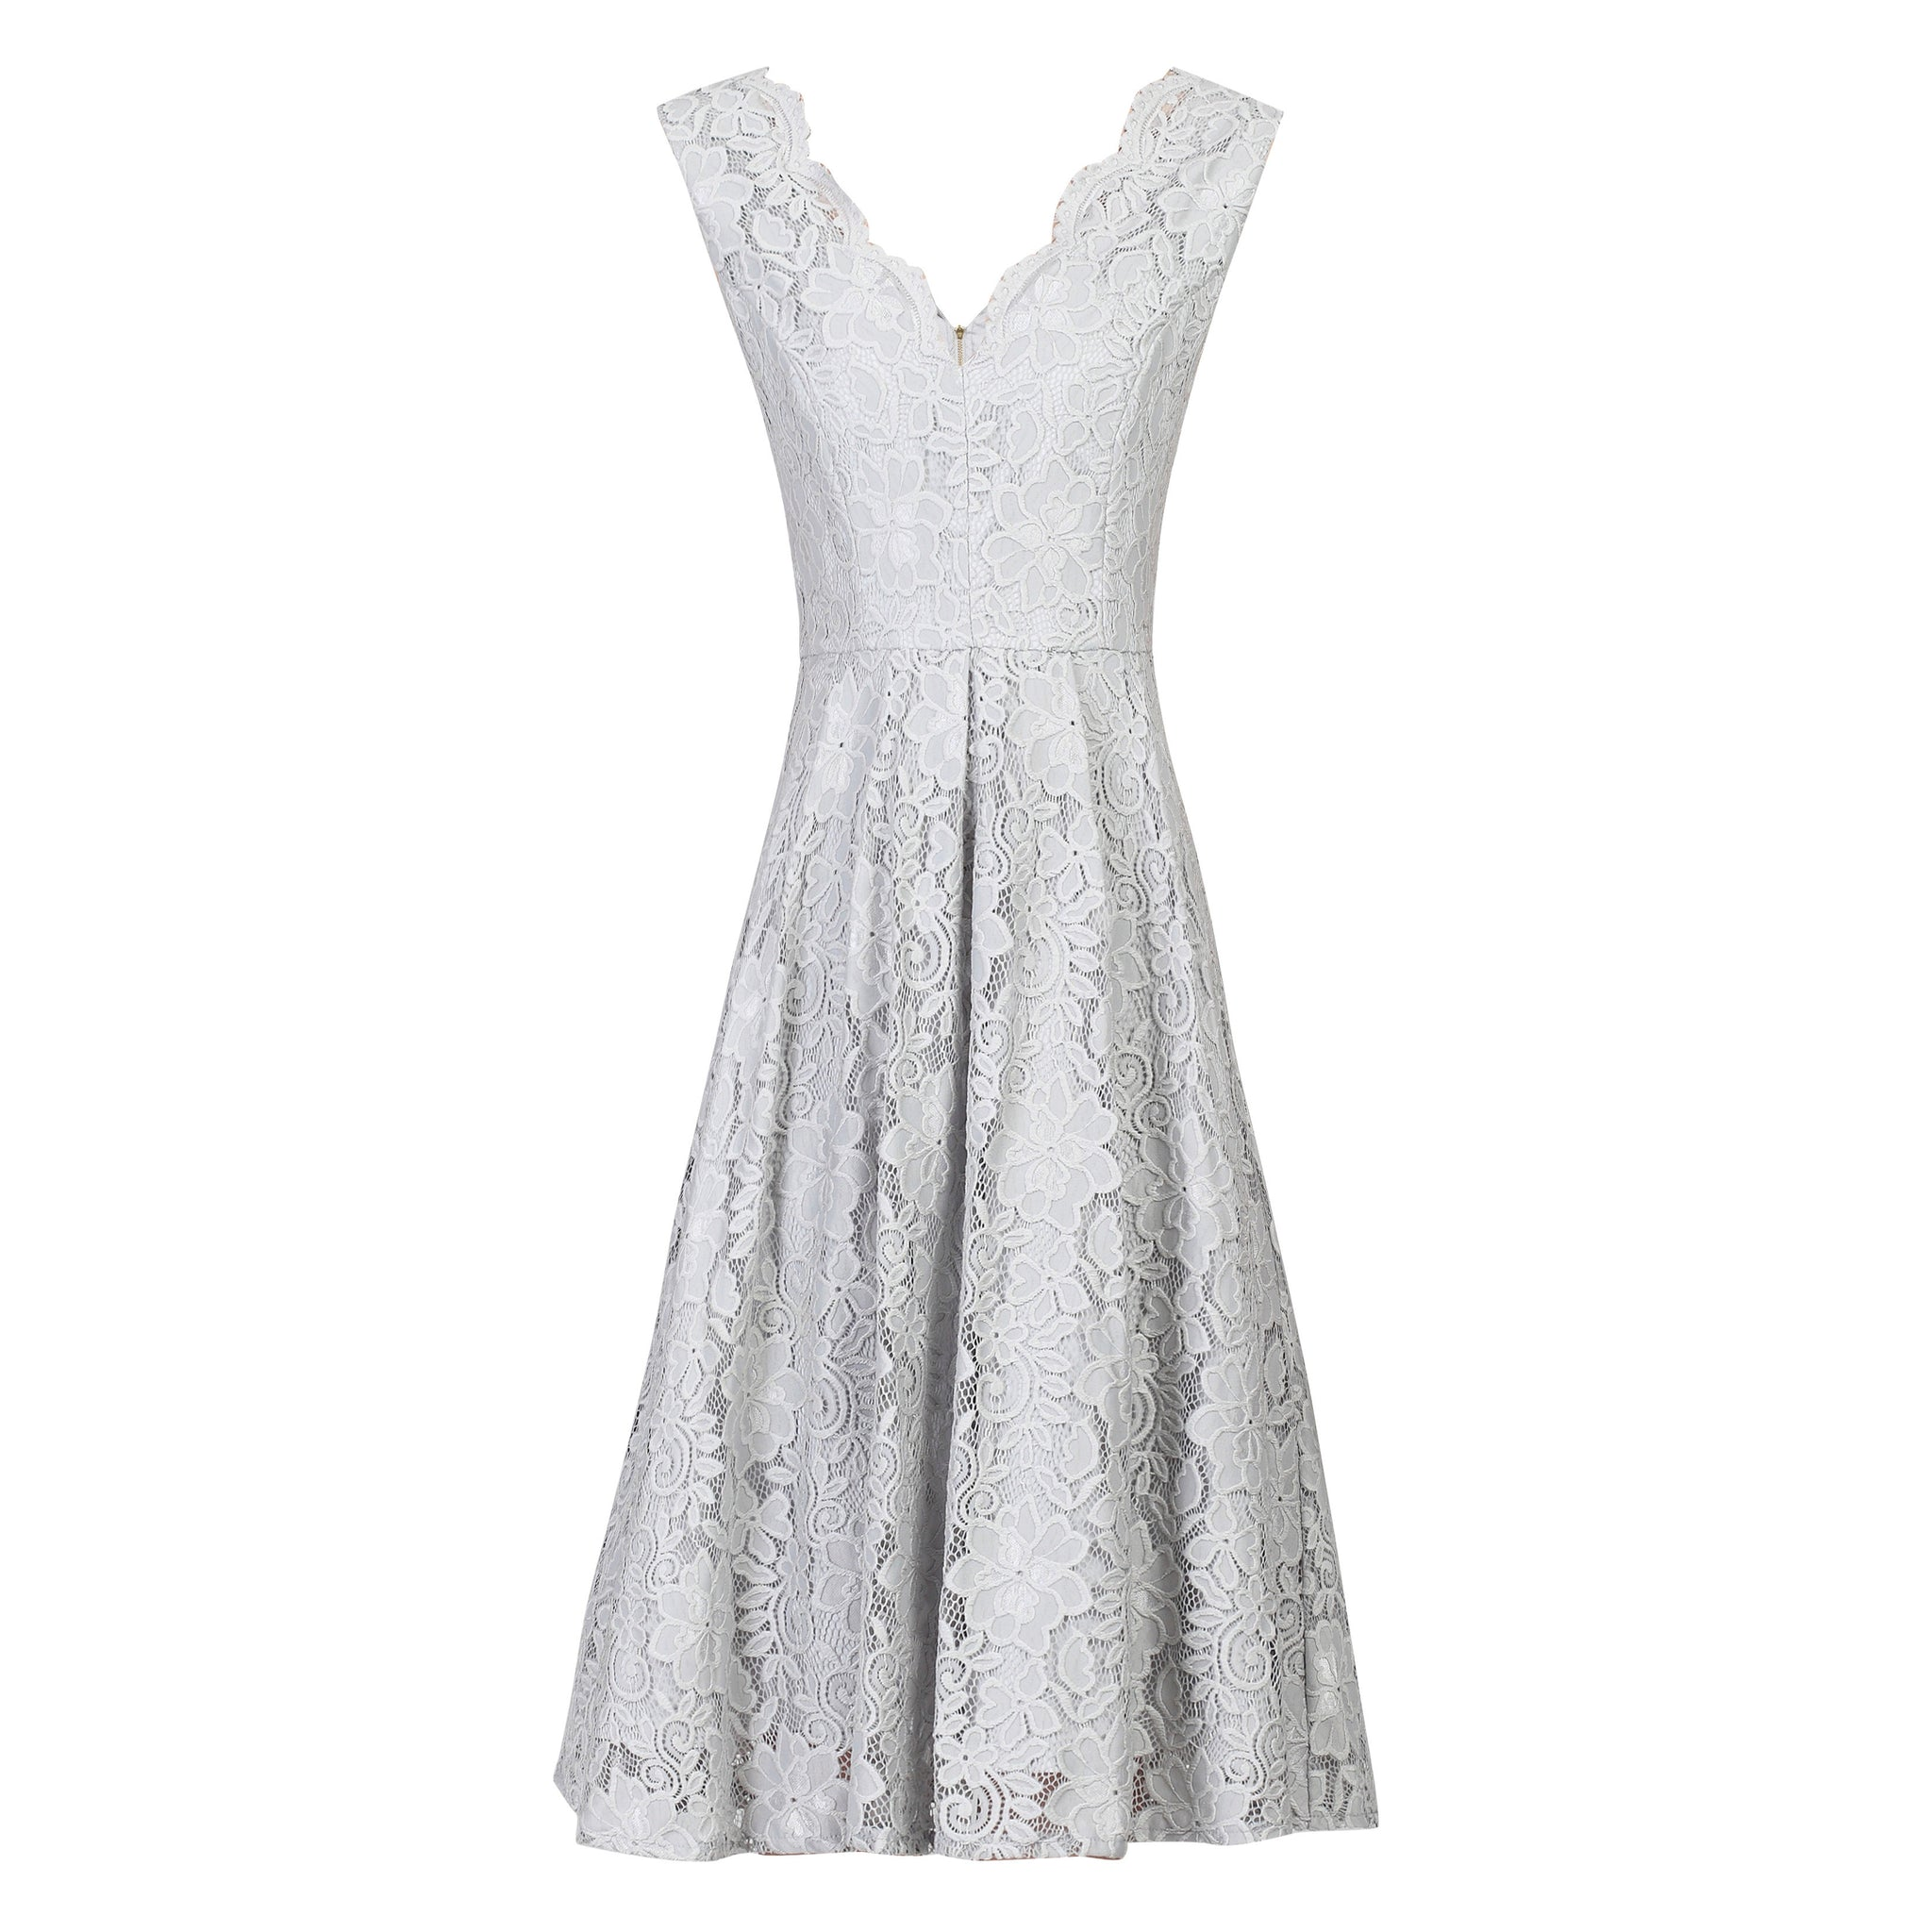 9d95f42ebc77 Silver Grey Embroidered Lace Sleeveless V Neck 50s Bridesmaid Swing Dress